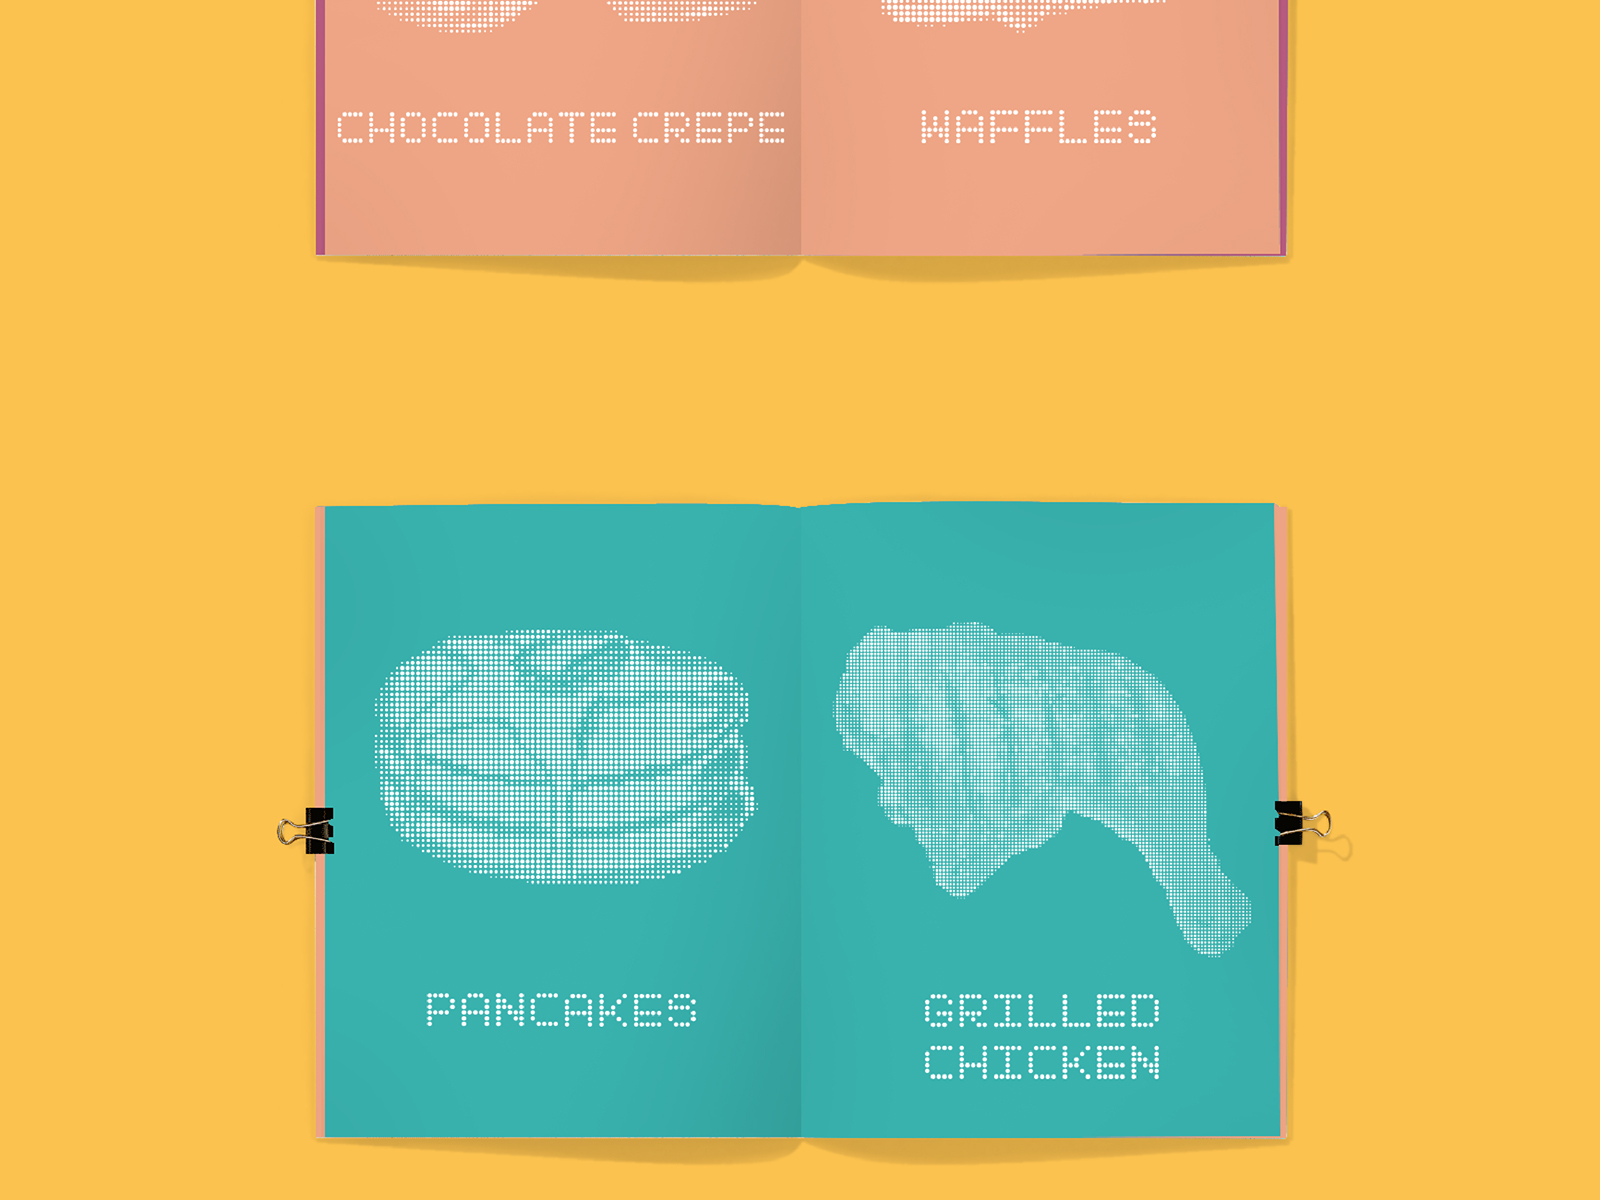 Grindz brand illustration used in social media management showing chocolate crepe and waffles with pancakes and grilled chicken